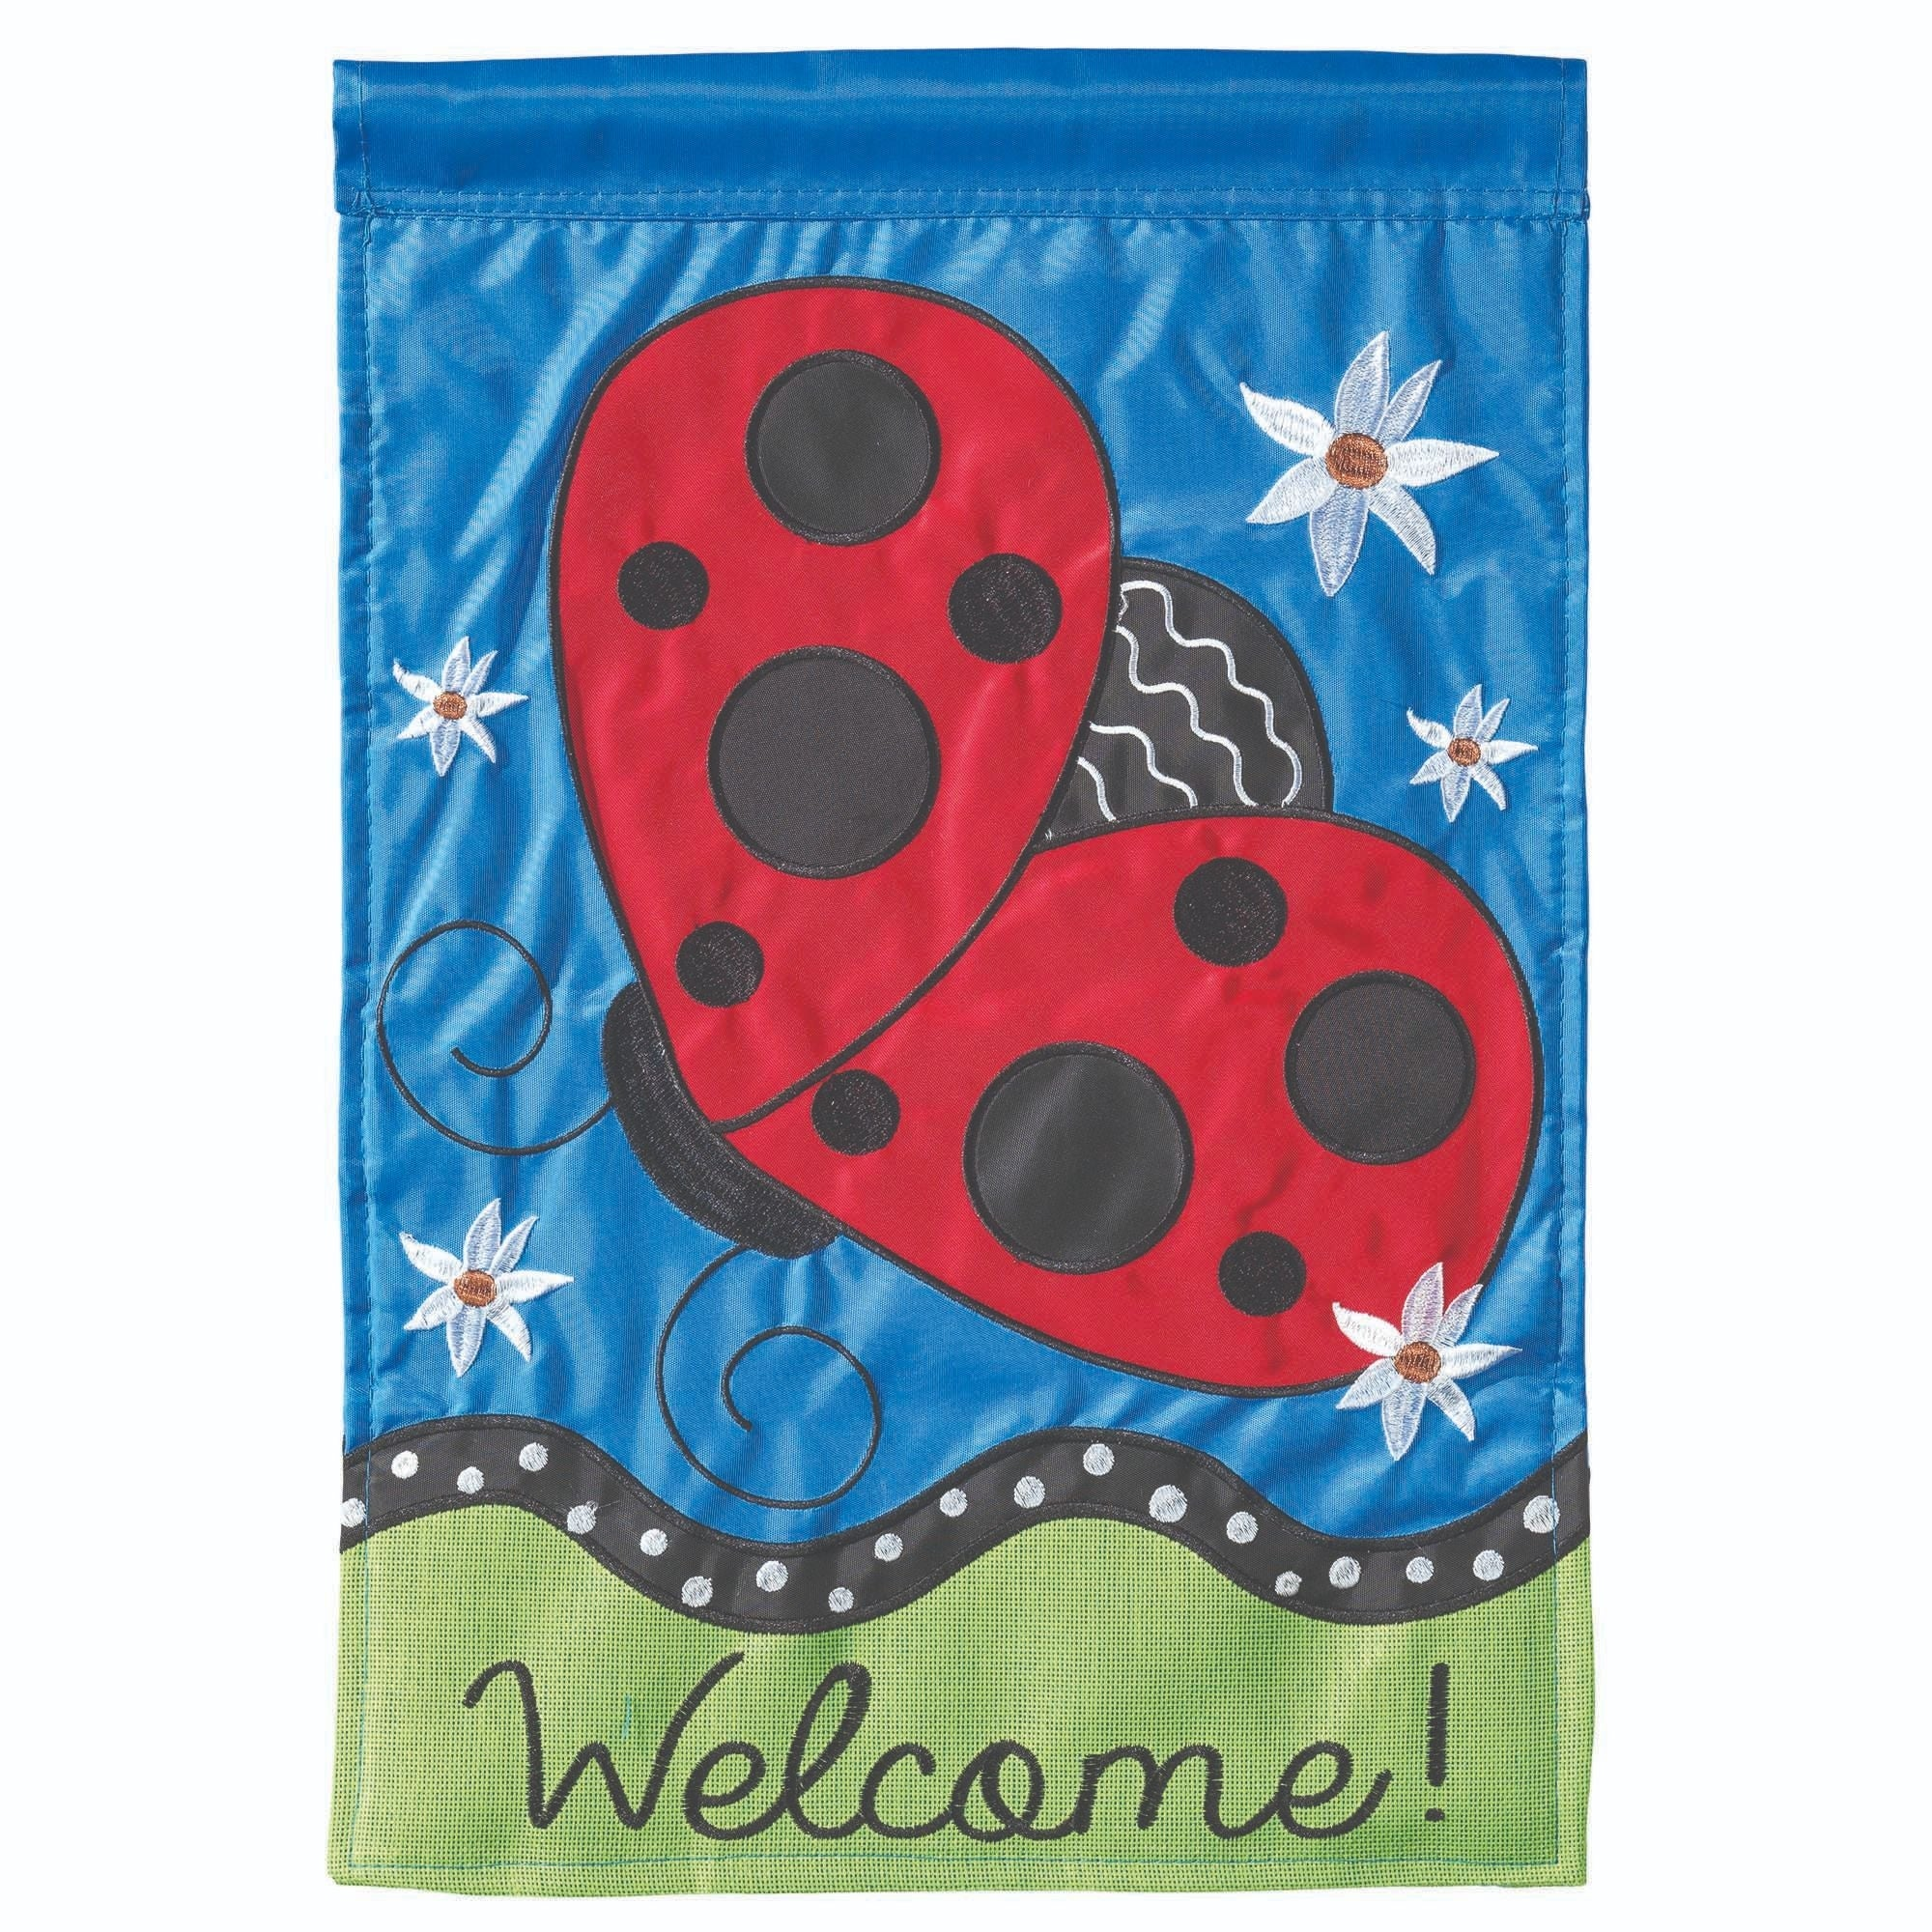 Shop Red And Blue Welcome Printed Rectangular Large Flag 42 X 29 Overstock 28749883